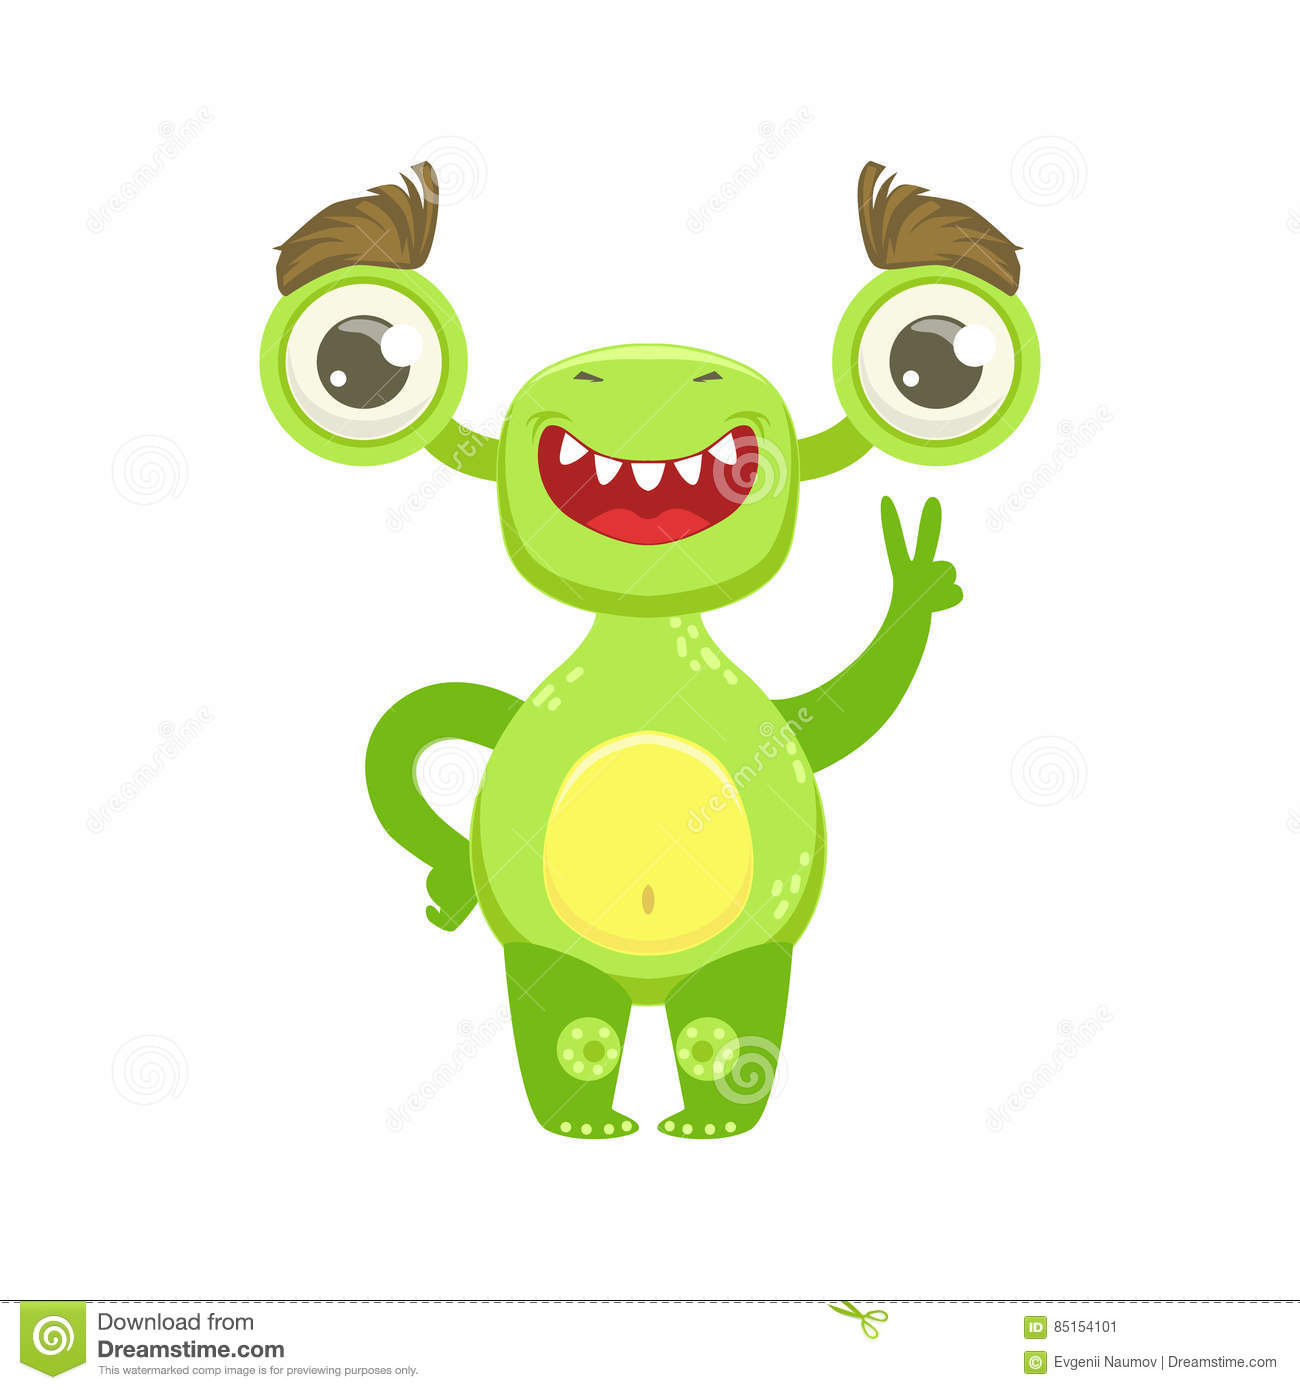 Funny Monster Smiling And Showing Peace Gesture, Green Alien